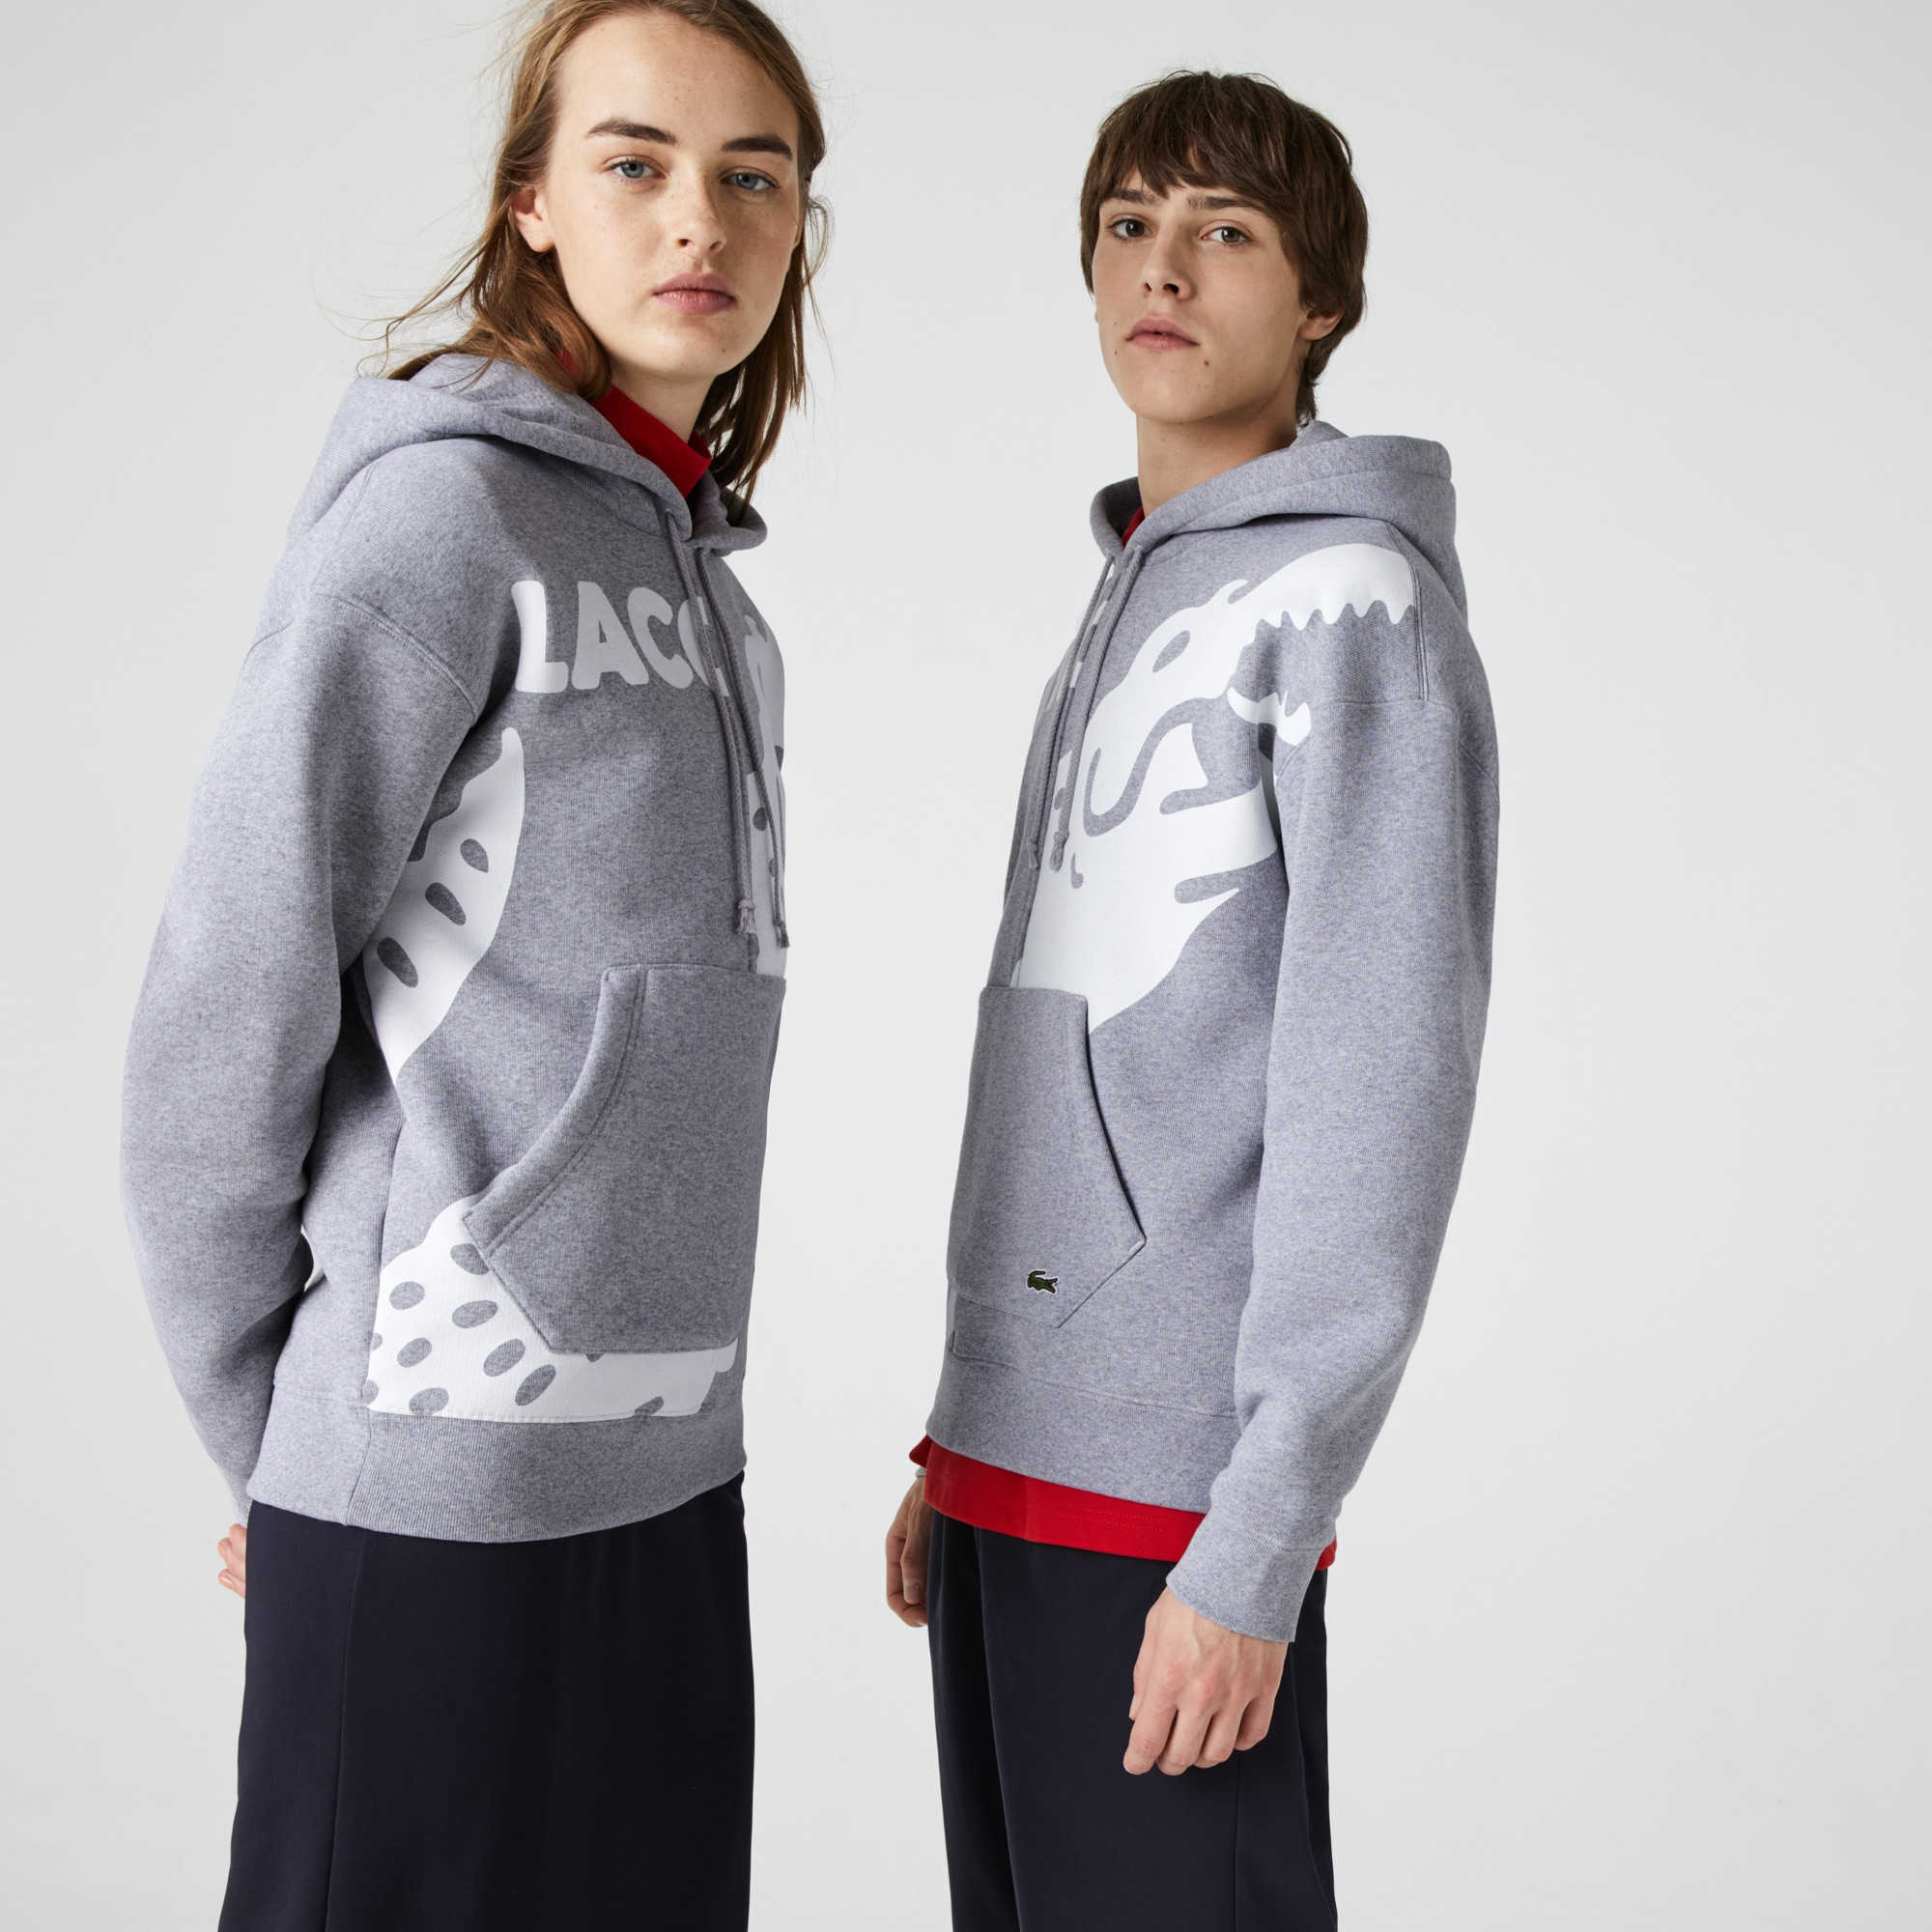 Unisex 라코스테 Lacoste LIVE Loose Fit Print Fleece Hoodie,Grey Chine / White W9D